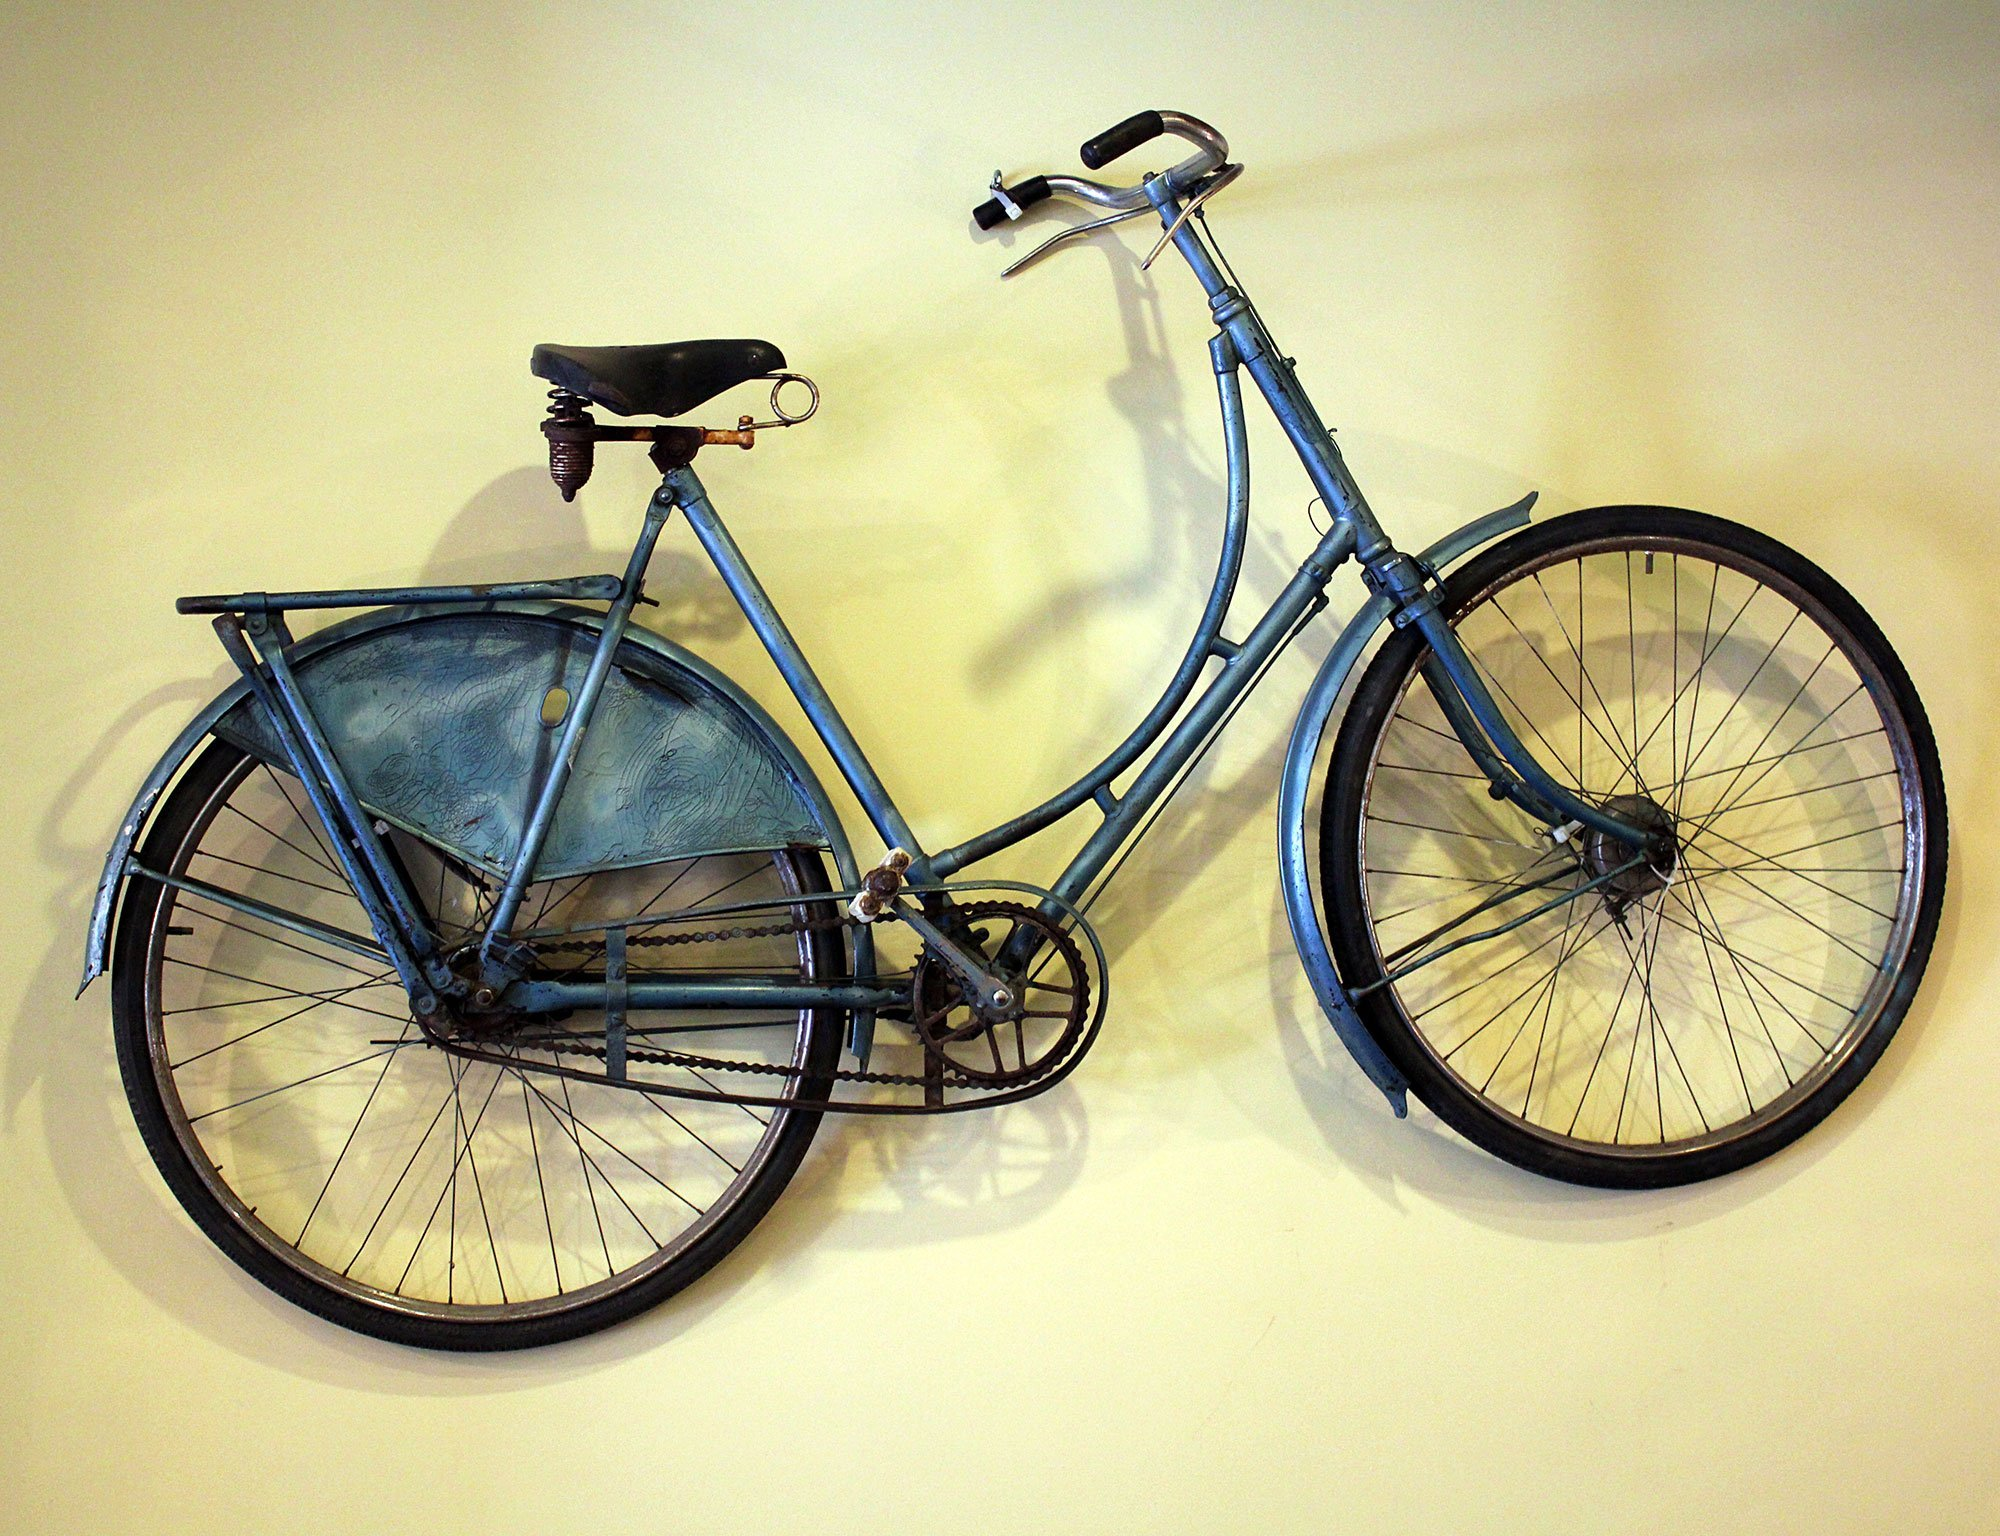 Stepthrough bicycle with fenders